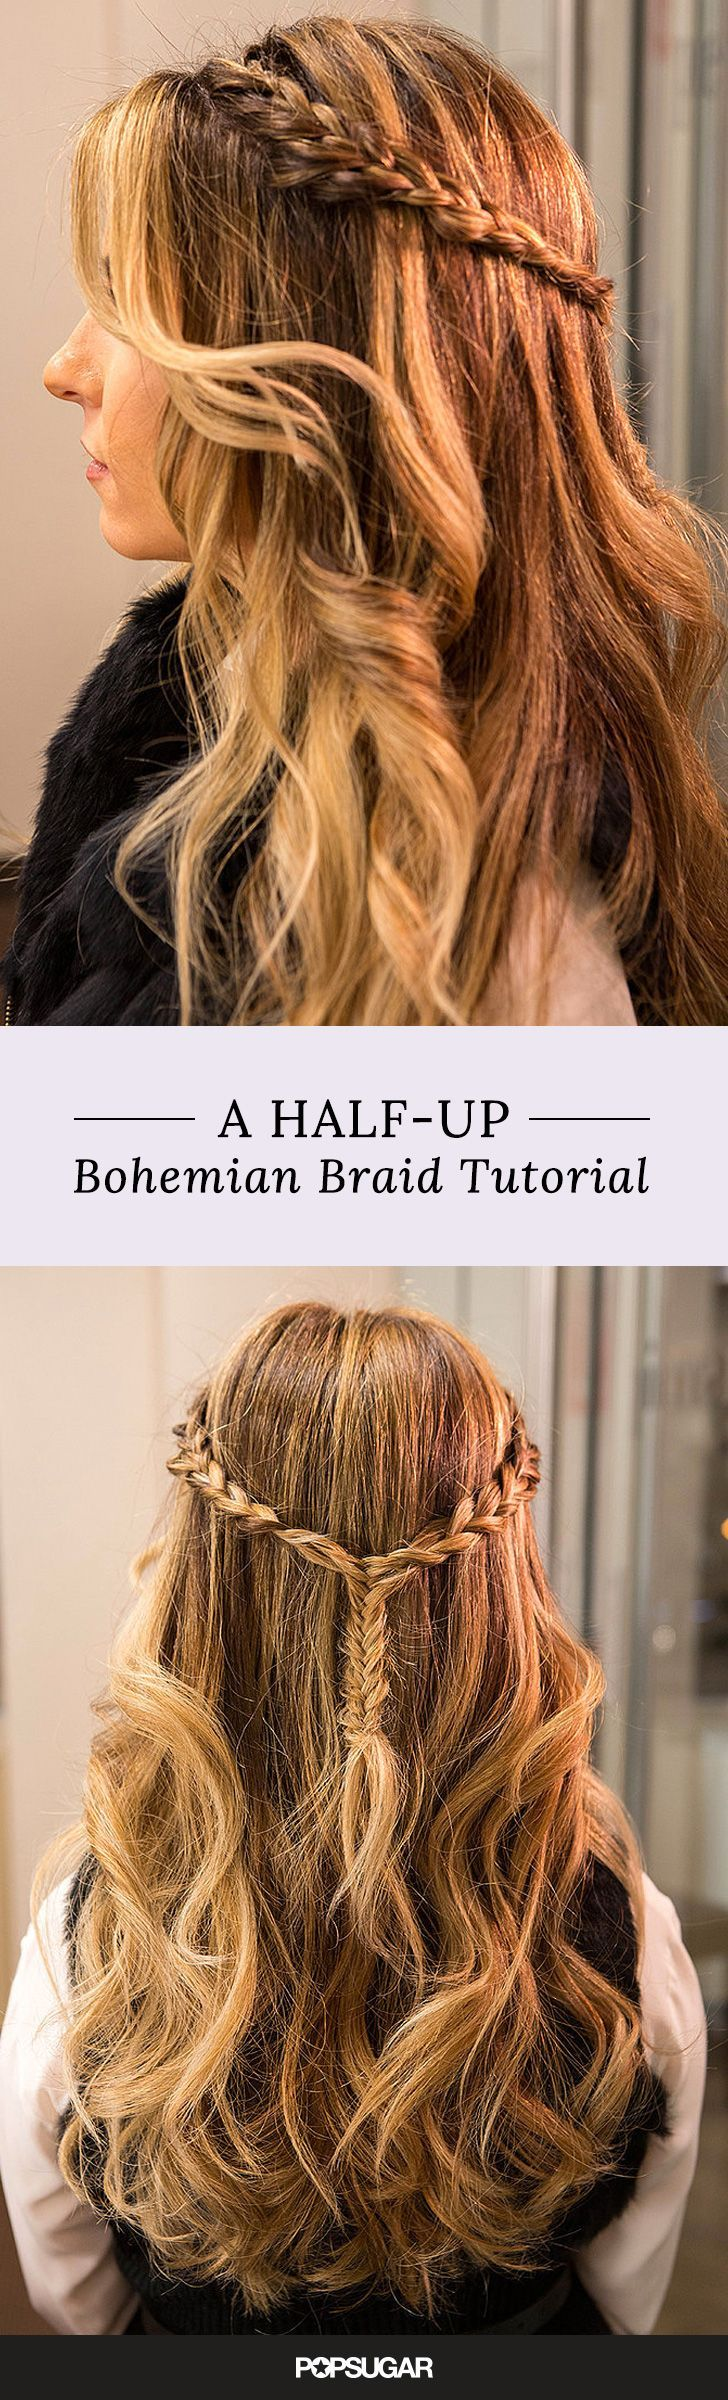 Steal The Limelight With These Sexy Bohemian Braids